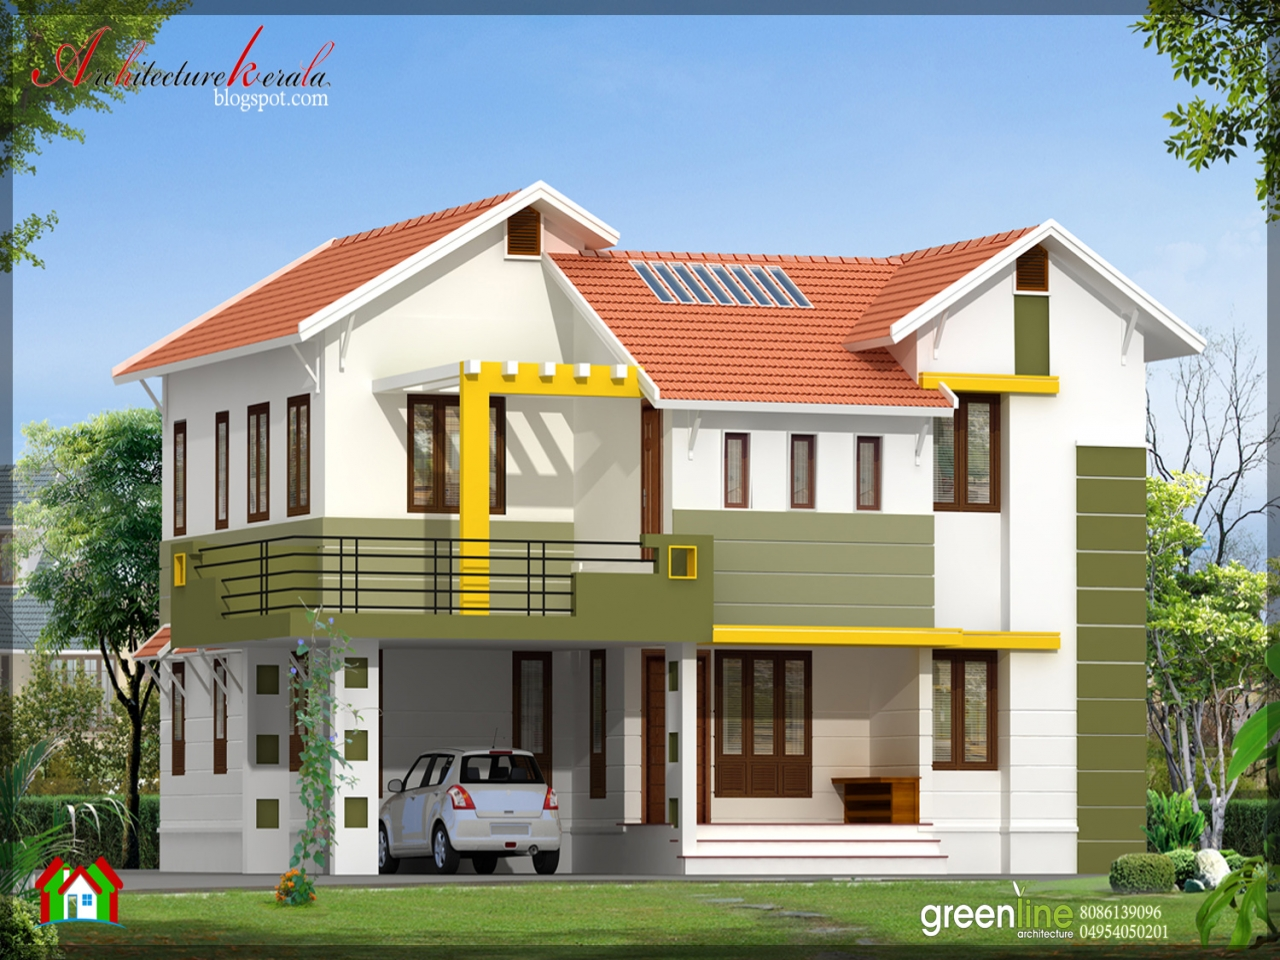 Simple modern house designs simple house design in india for Simple modern house blueprints